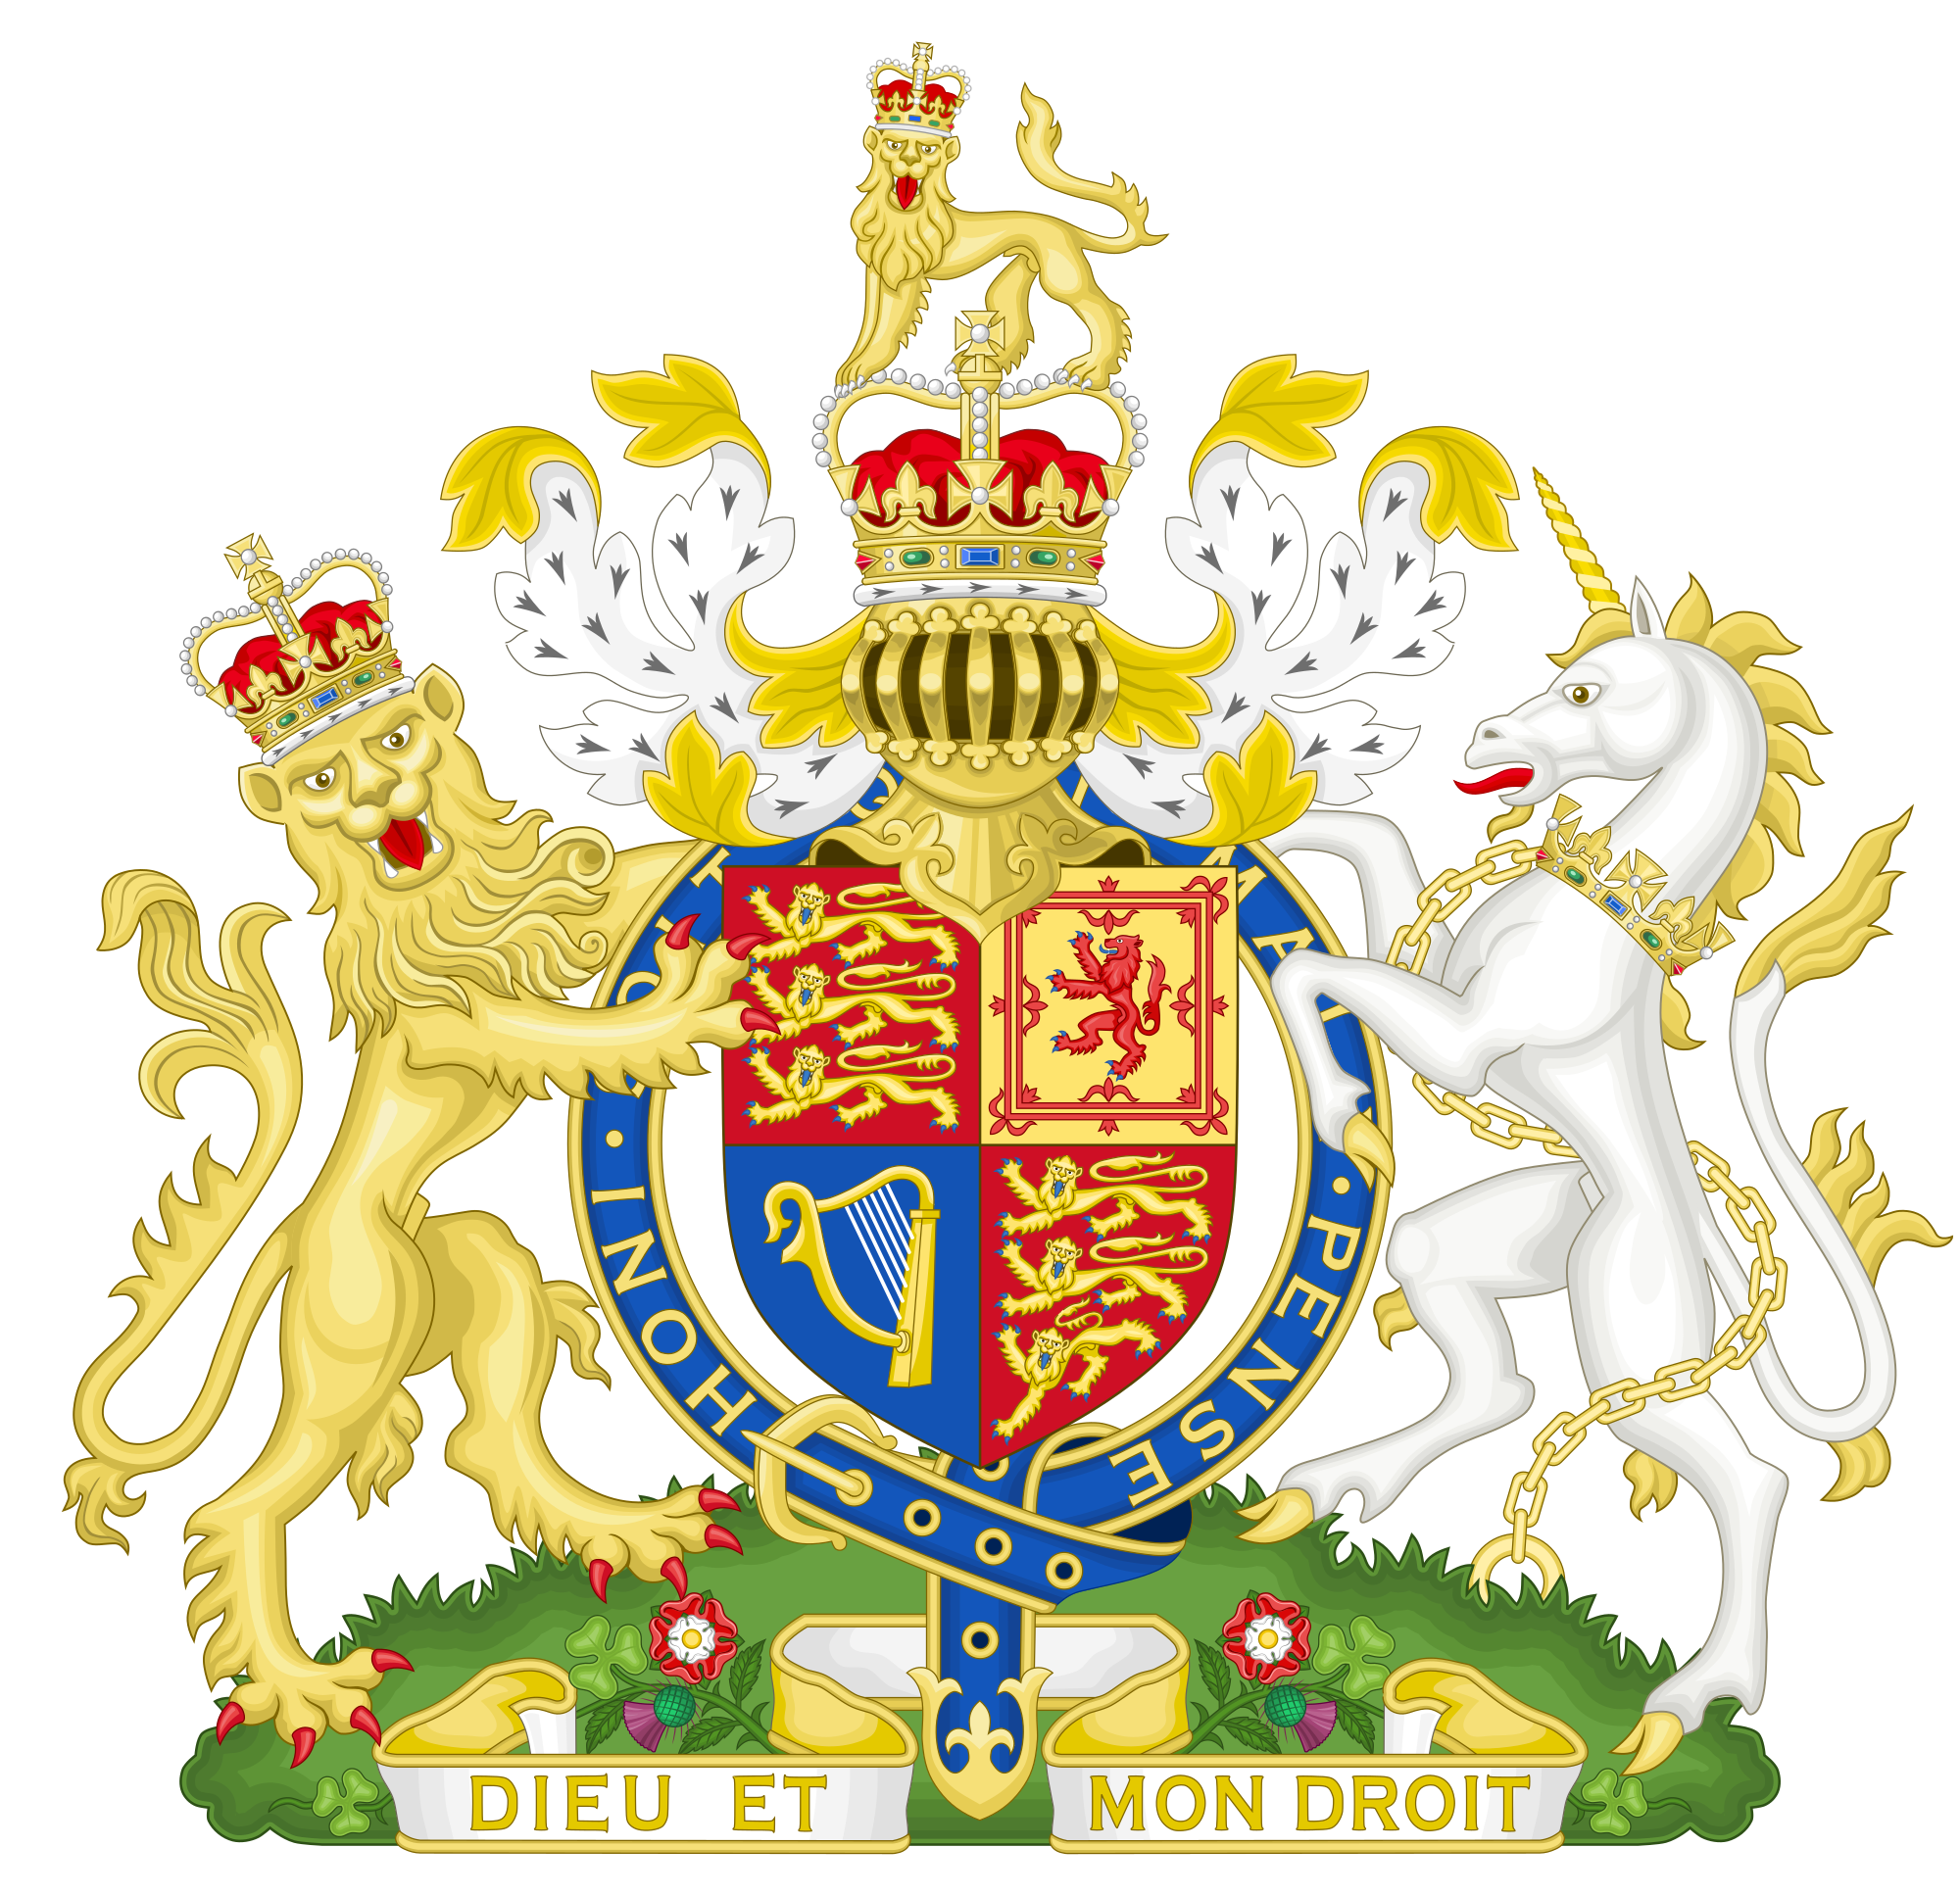 Royal coat of arms of the United Kingdom - Wikipedia